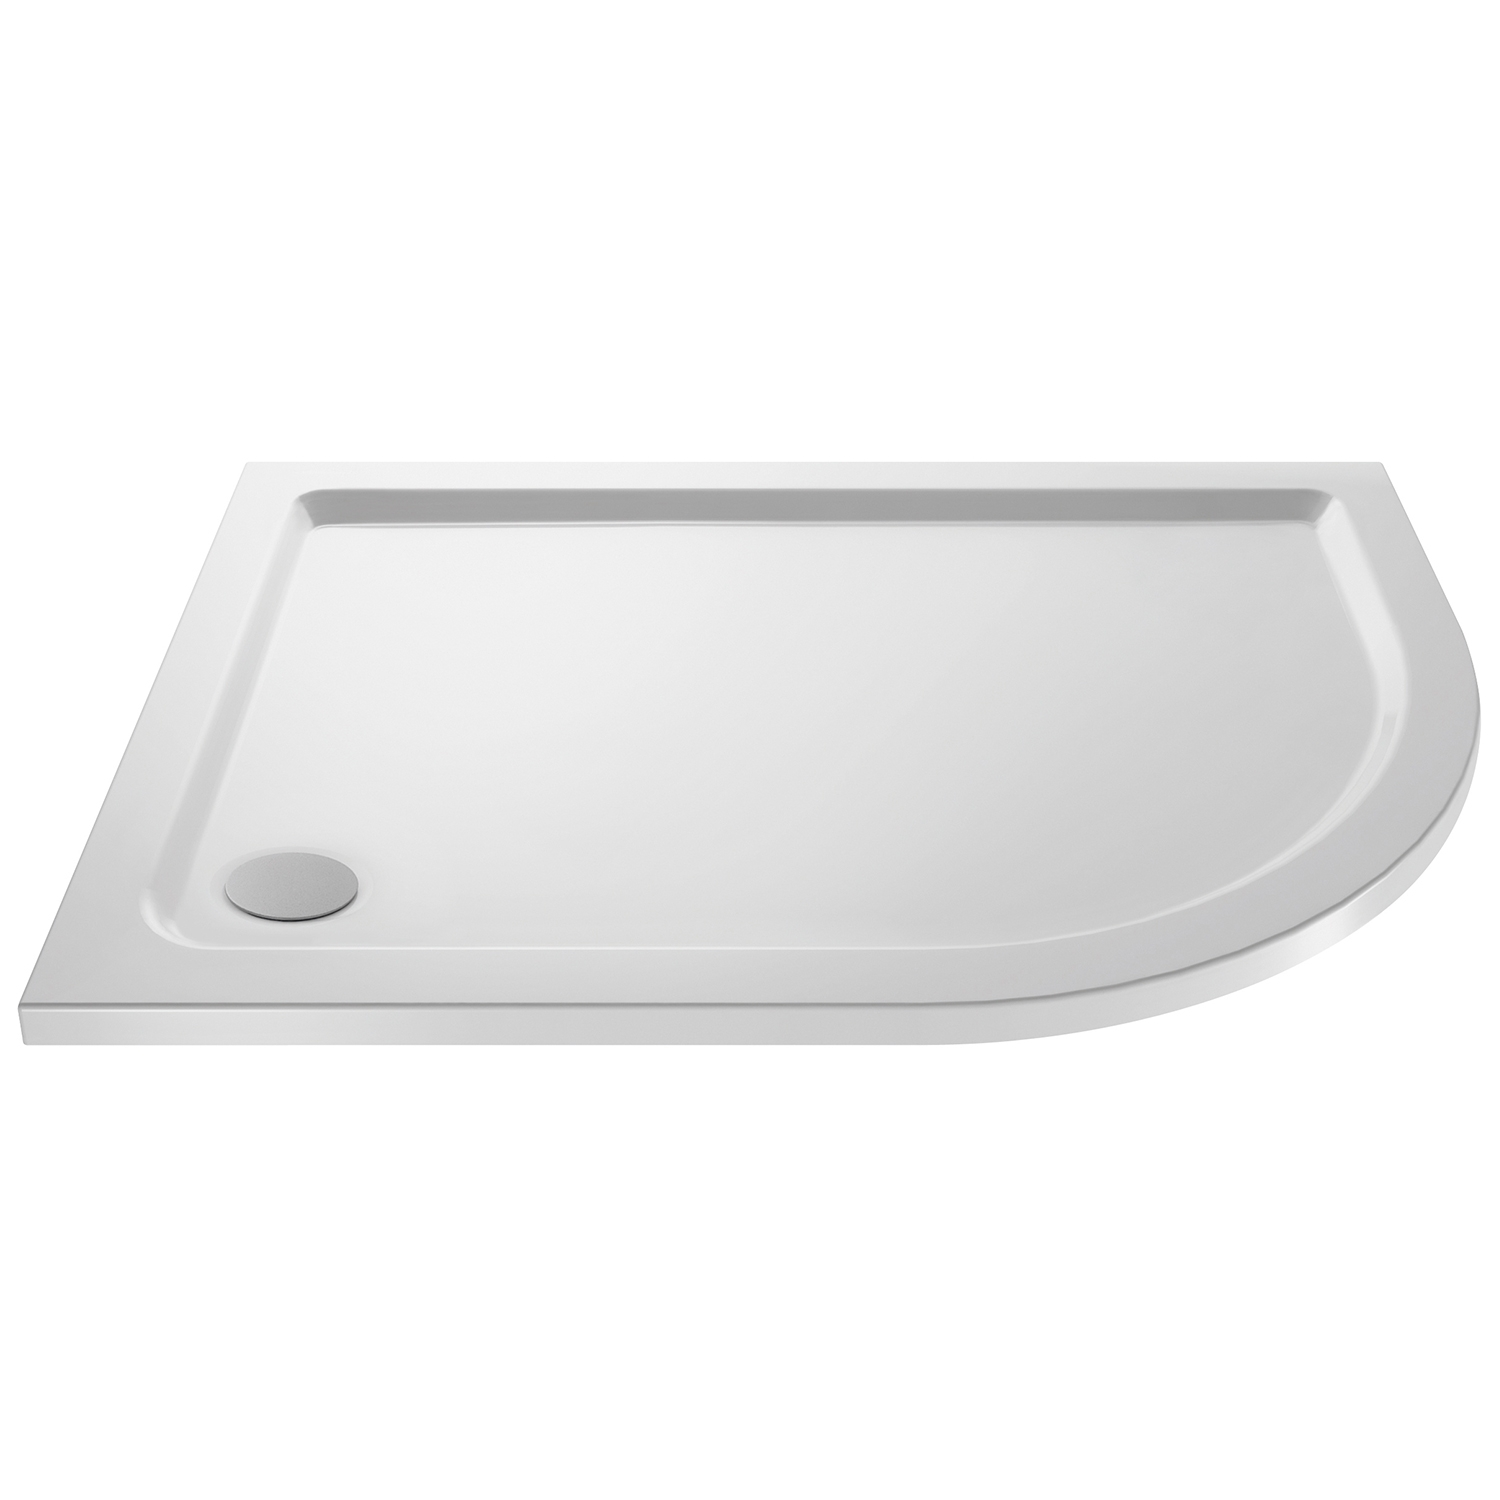 Premier Apex Offset Quadrant Shower Enclosure 900mm x 800mm with Shower Tray RH - 8mm Glass